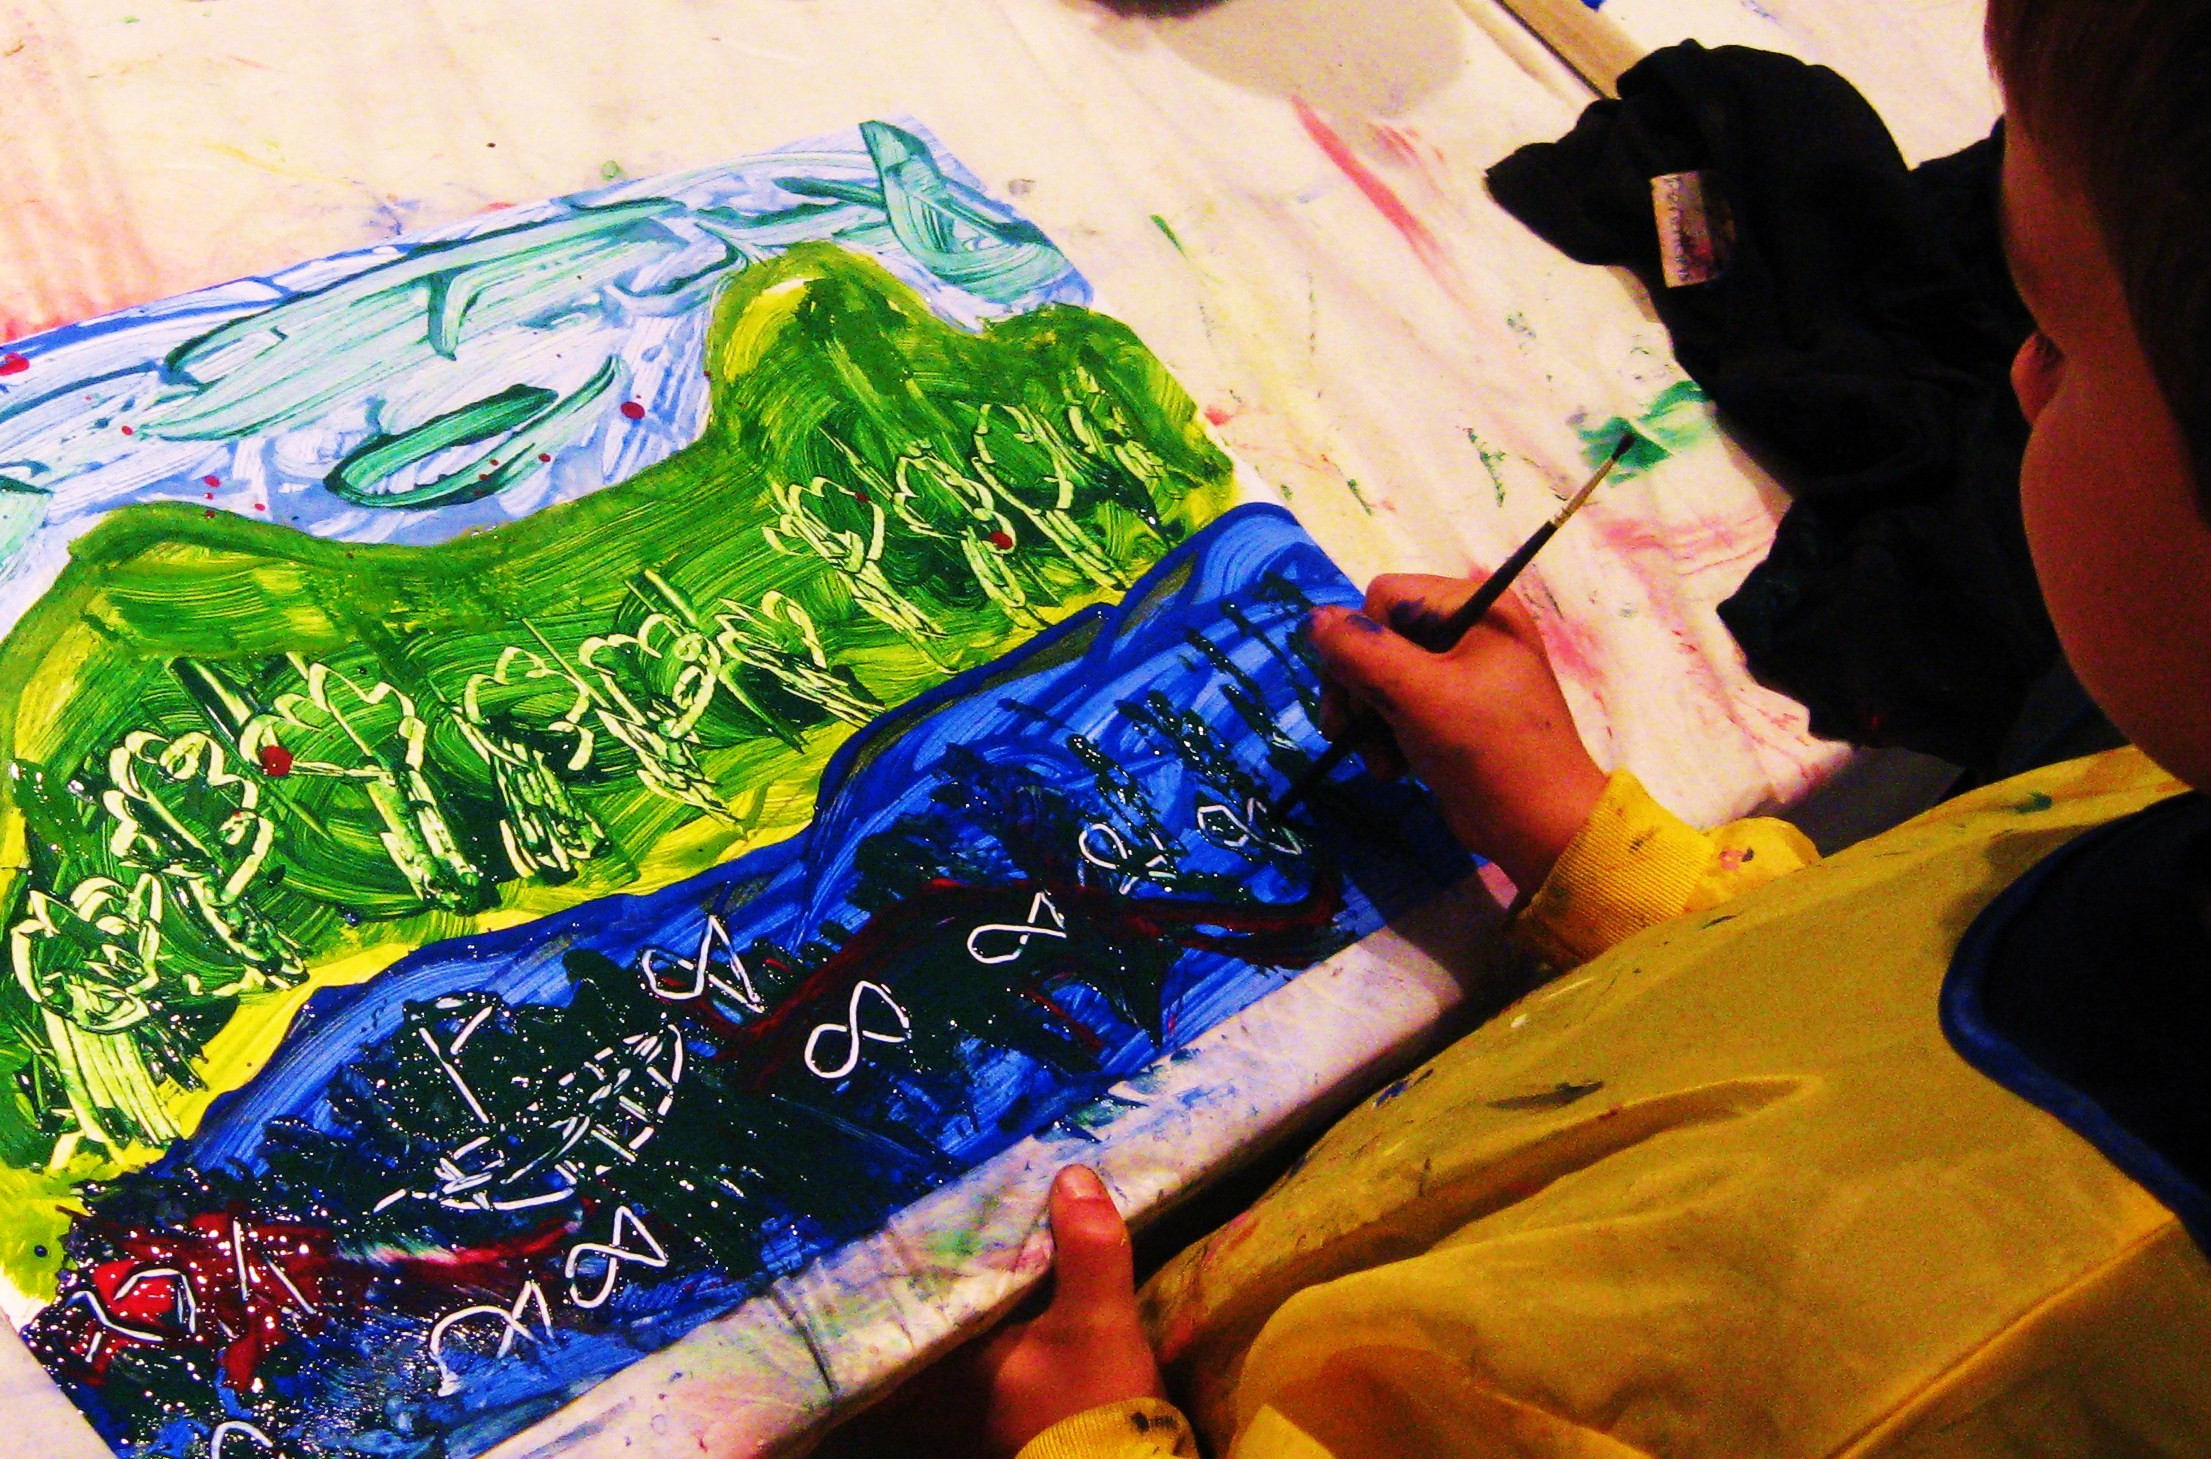 Painting drawing and watercolor classes for children 4 to 6 years old